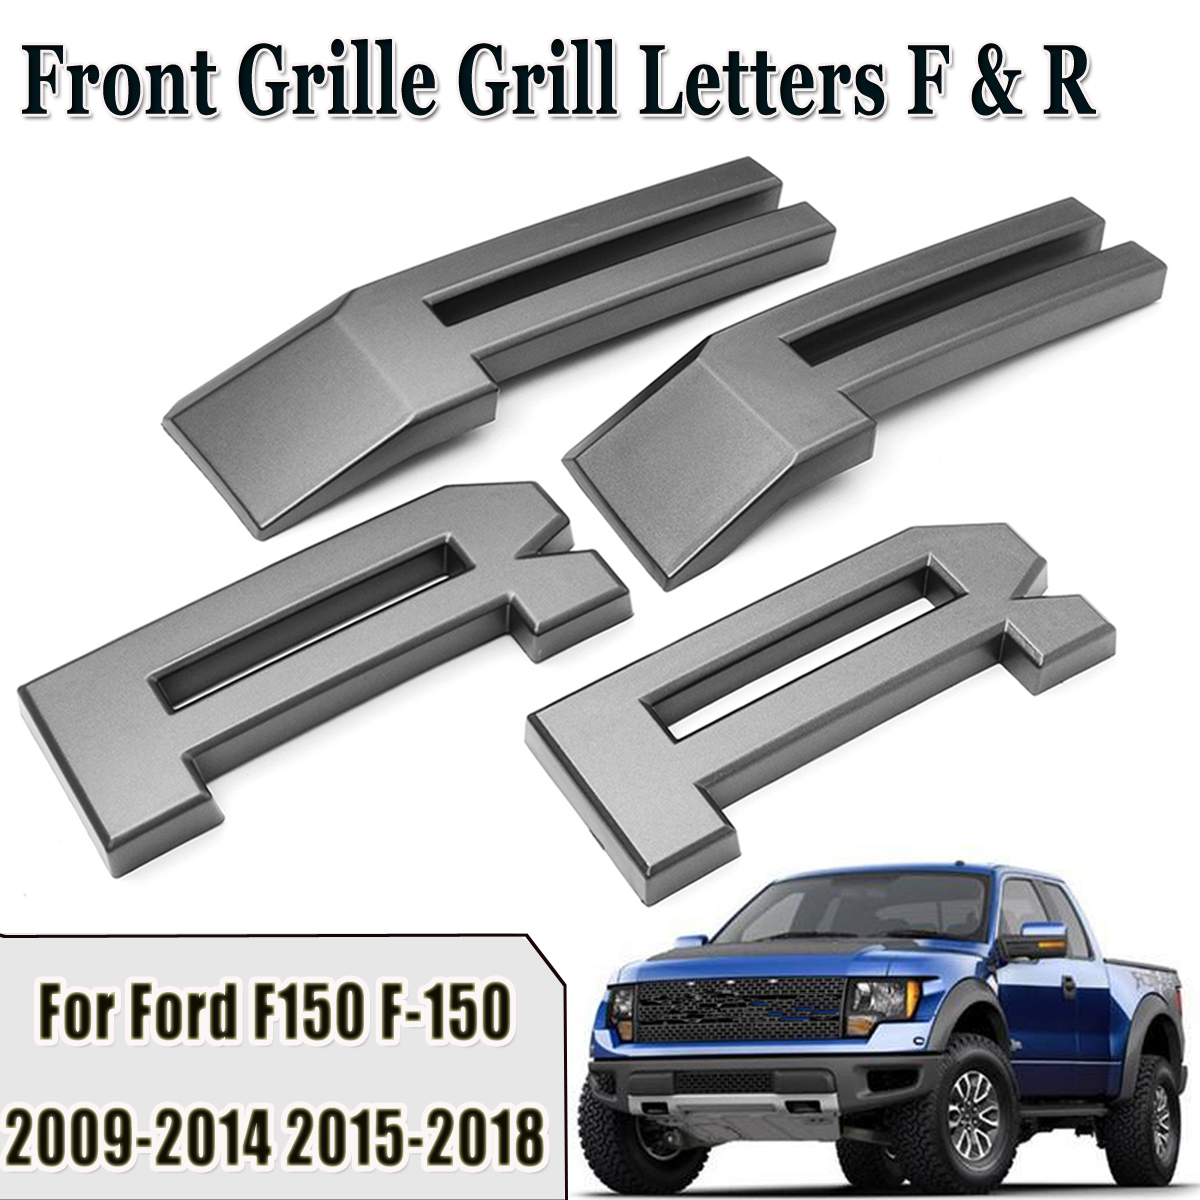 Raptor Style Car Front Grille Grill Letters F R for Ford F150 F-150 2009 2010 2011 2012 2013 2014 2015 2016 2017 2018 цена